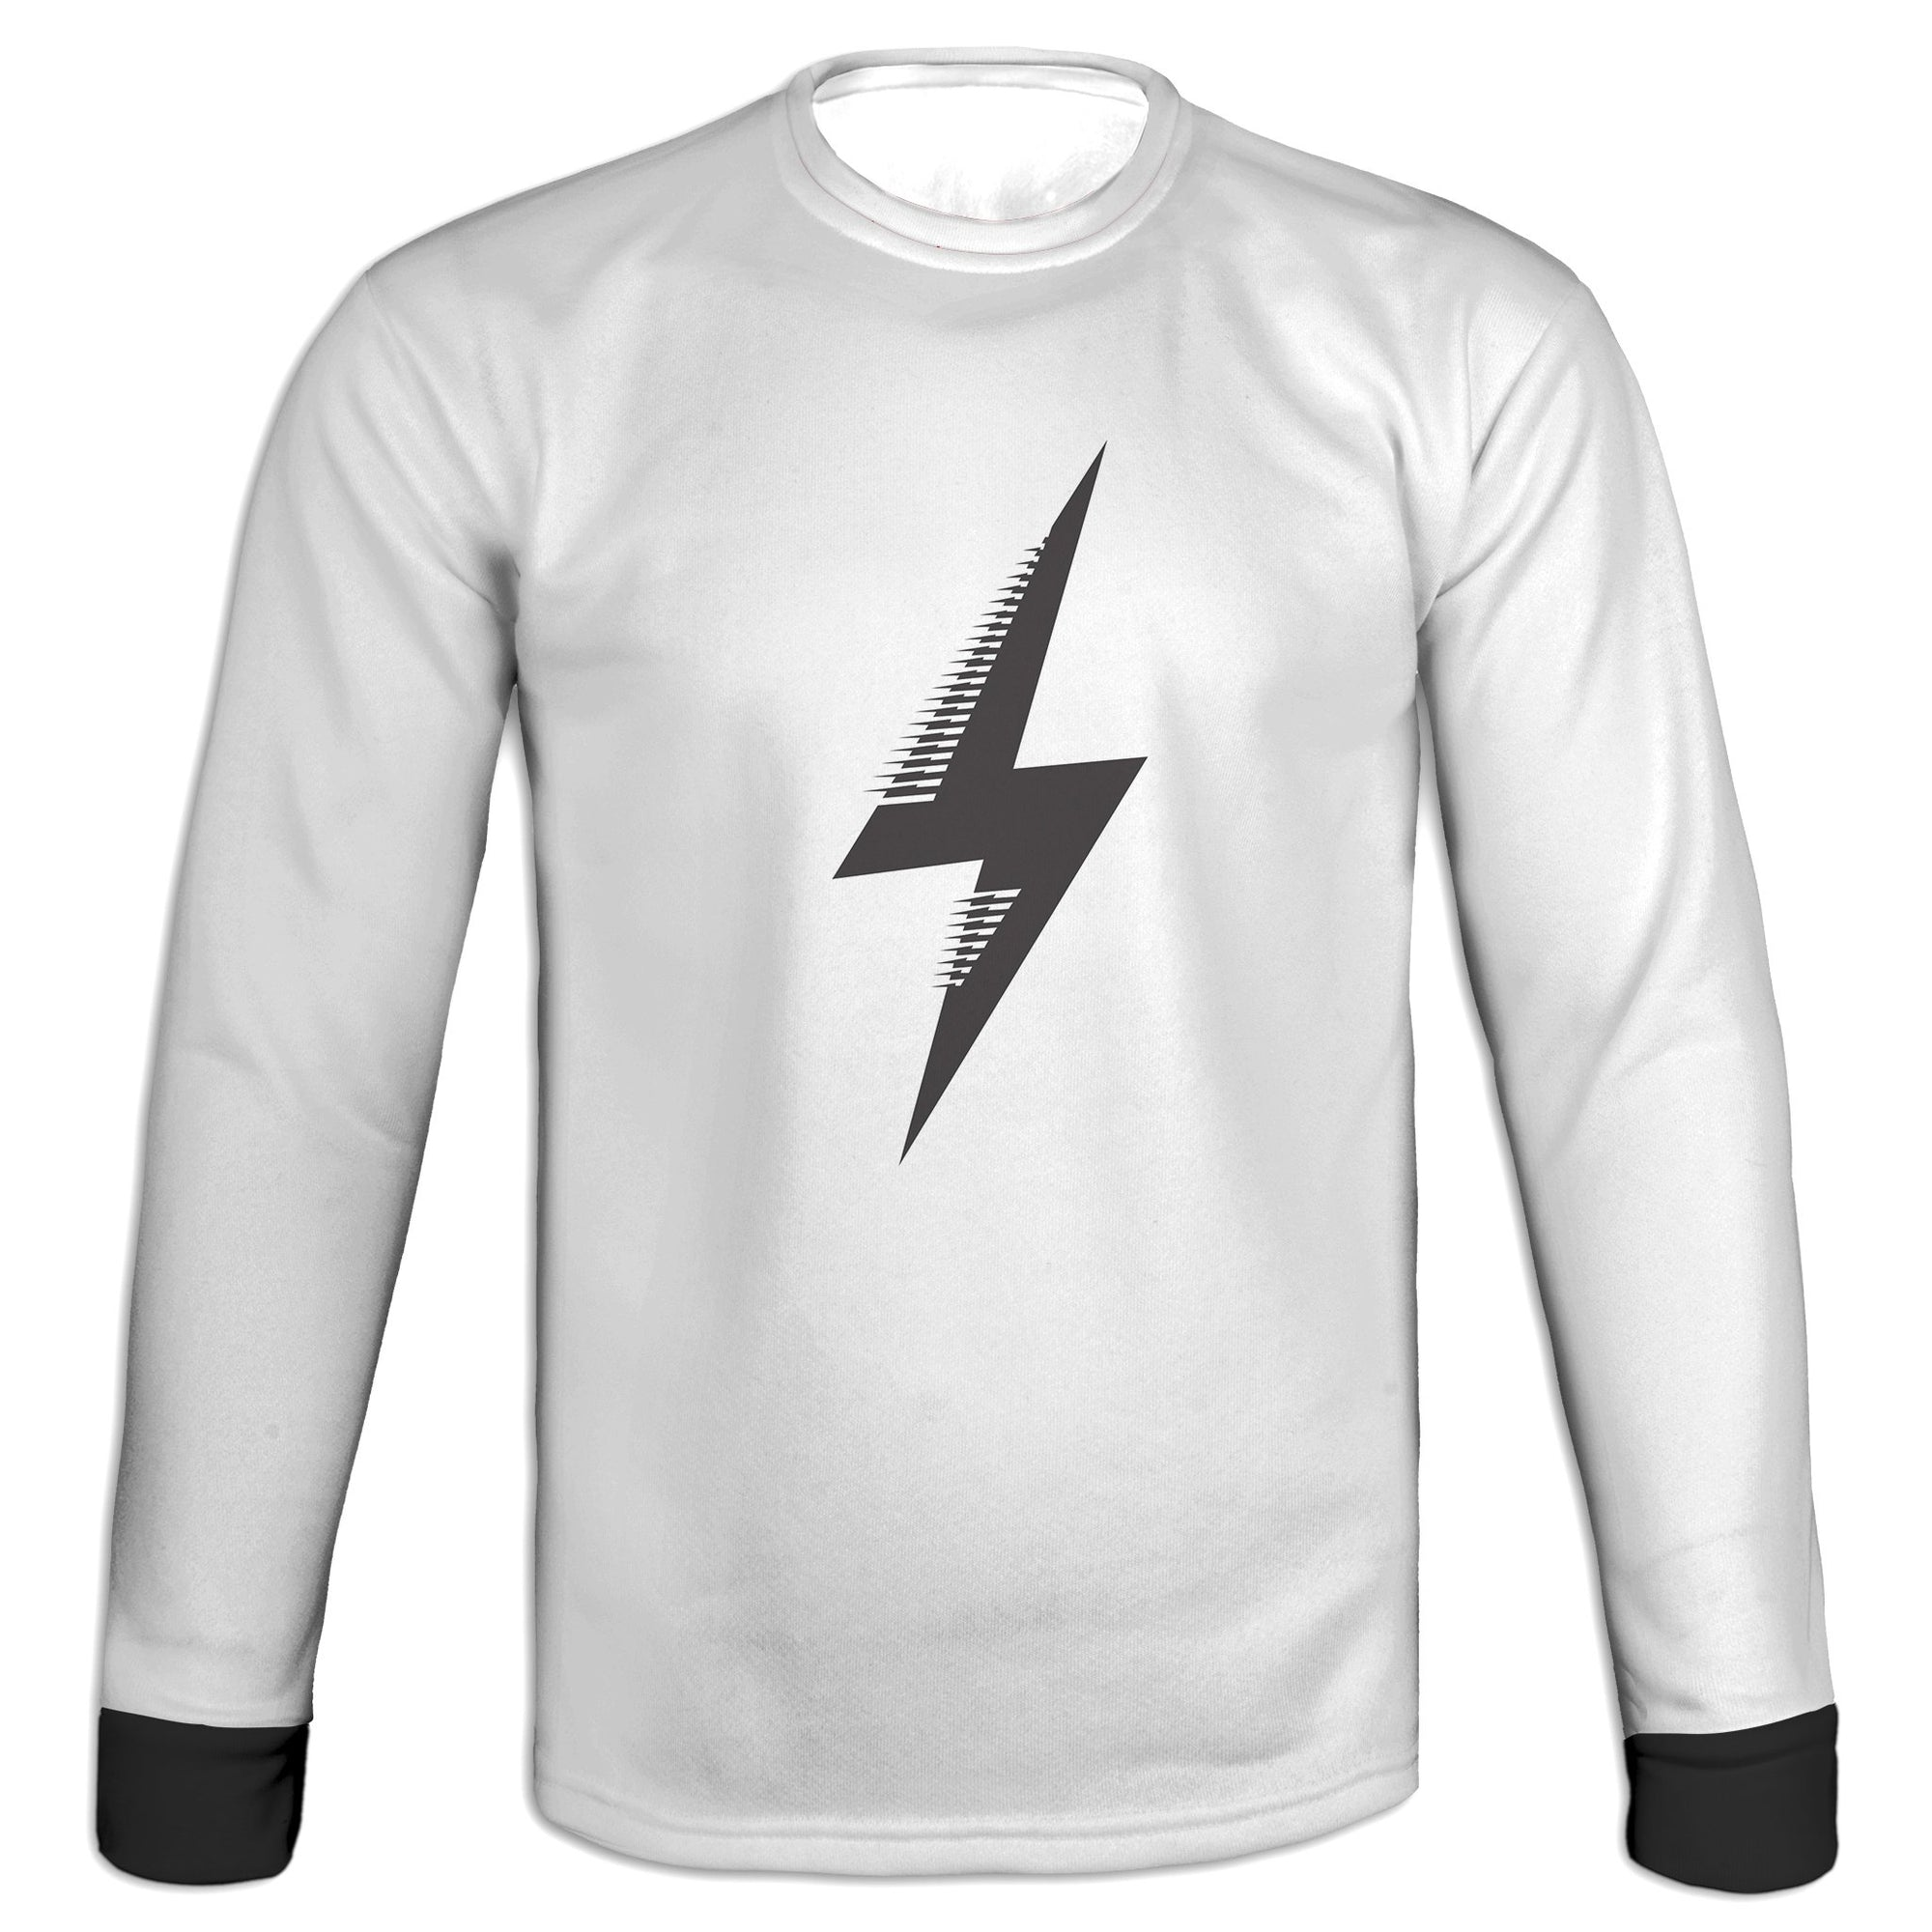 Bolt Sweatshirt | flashgordonshop.com